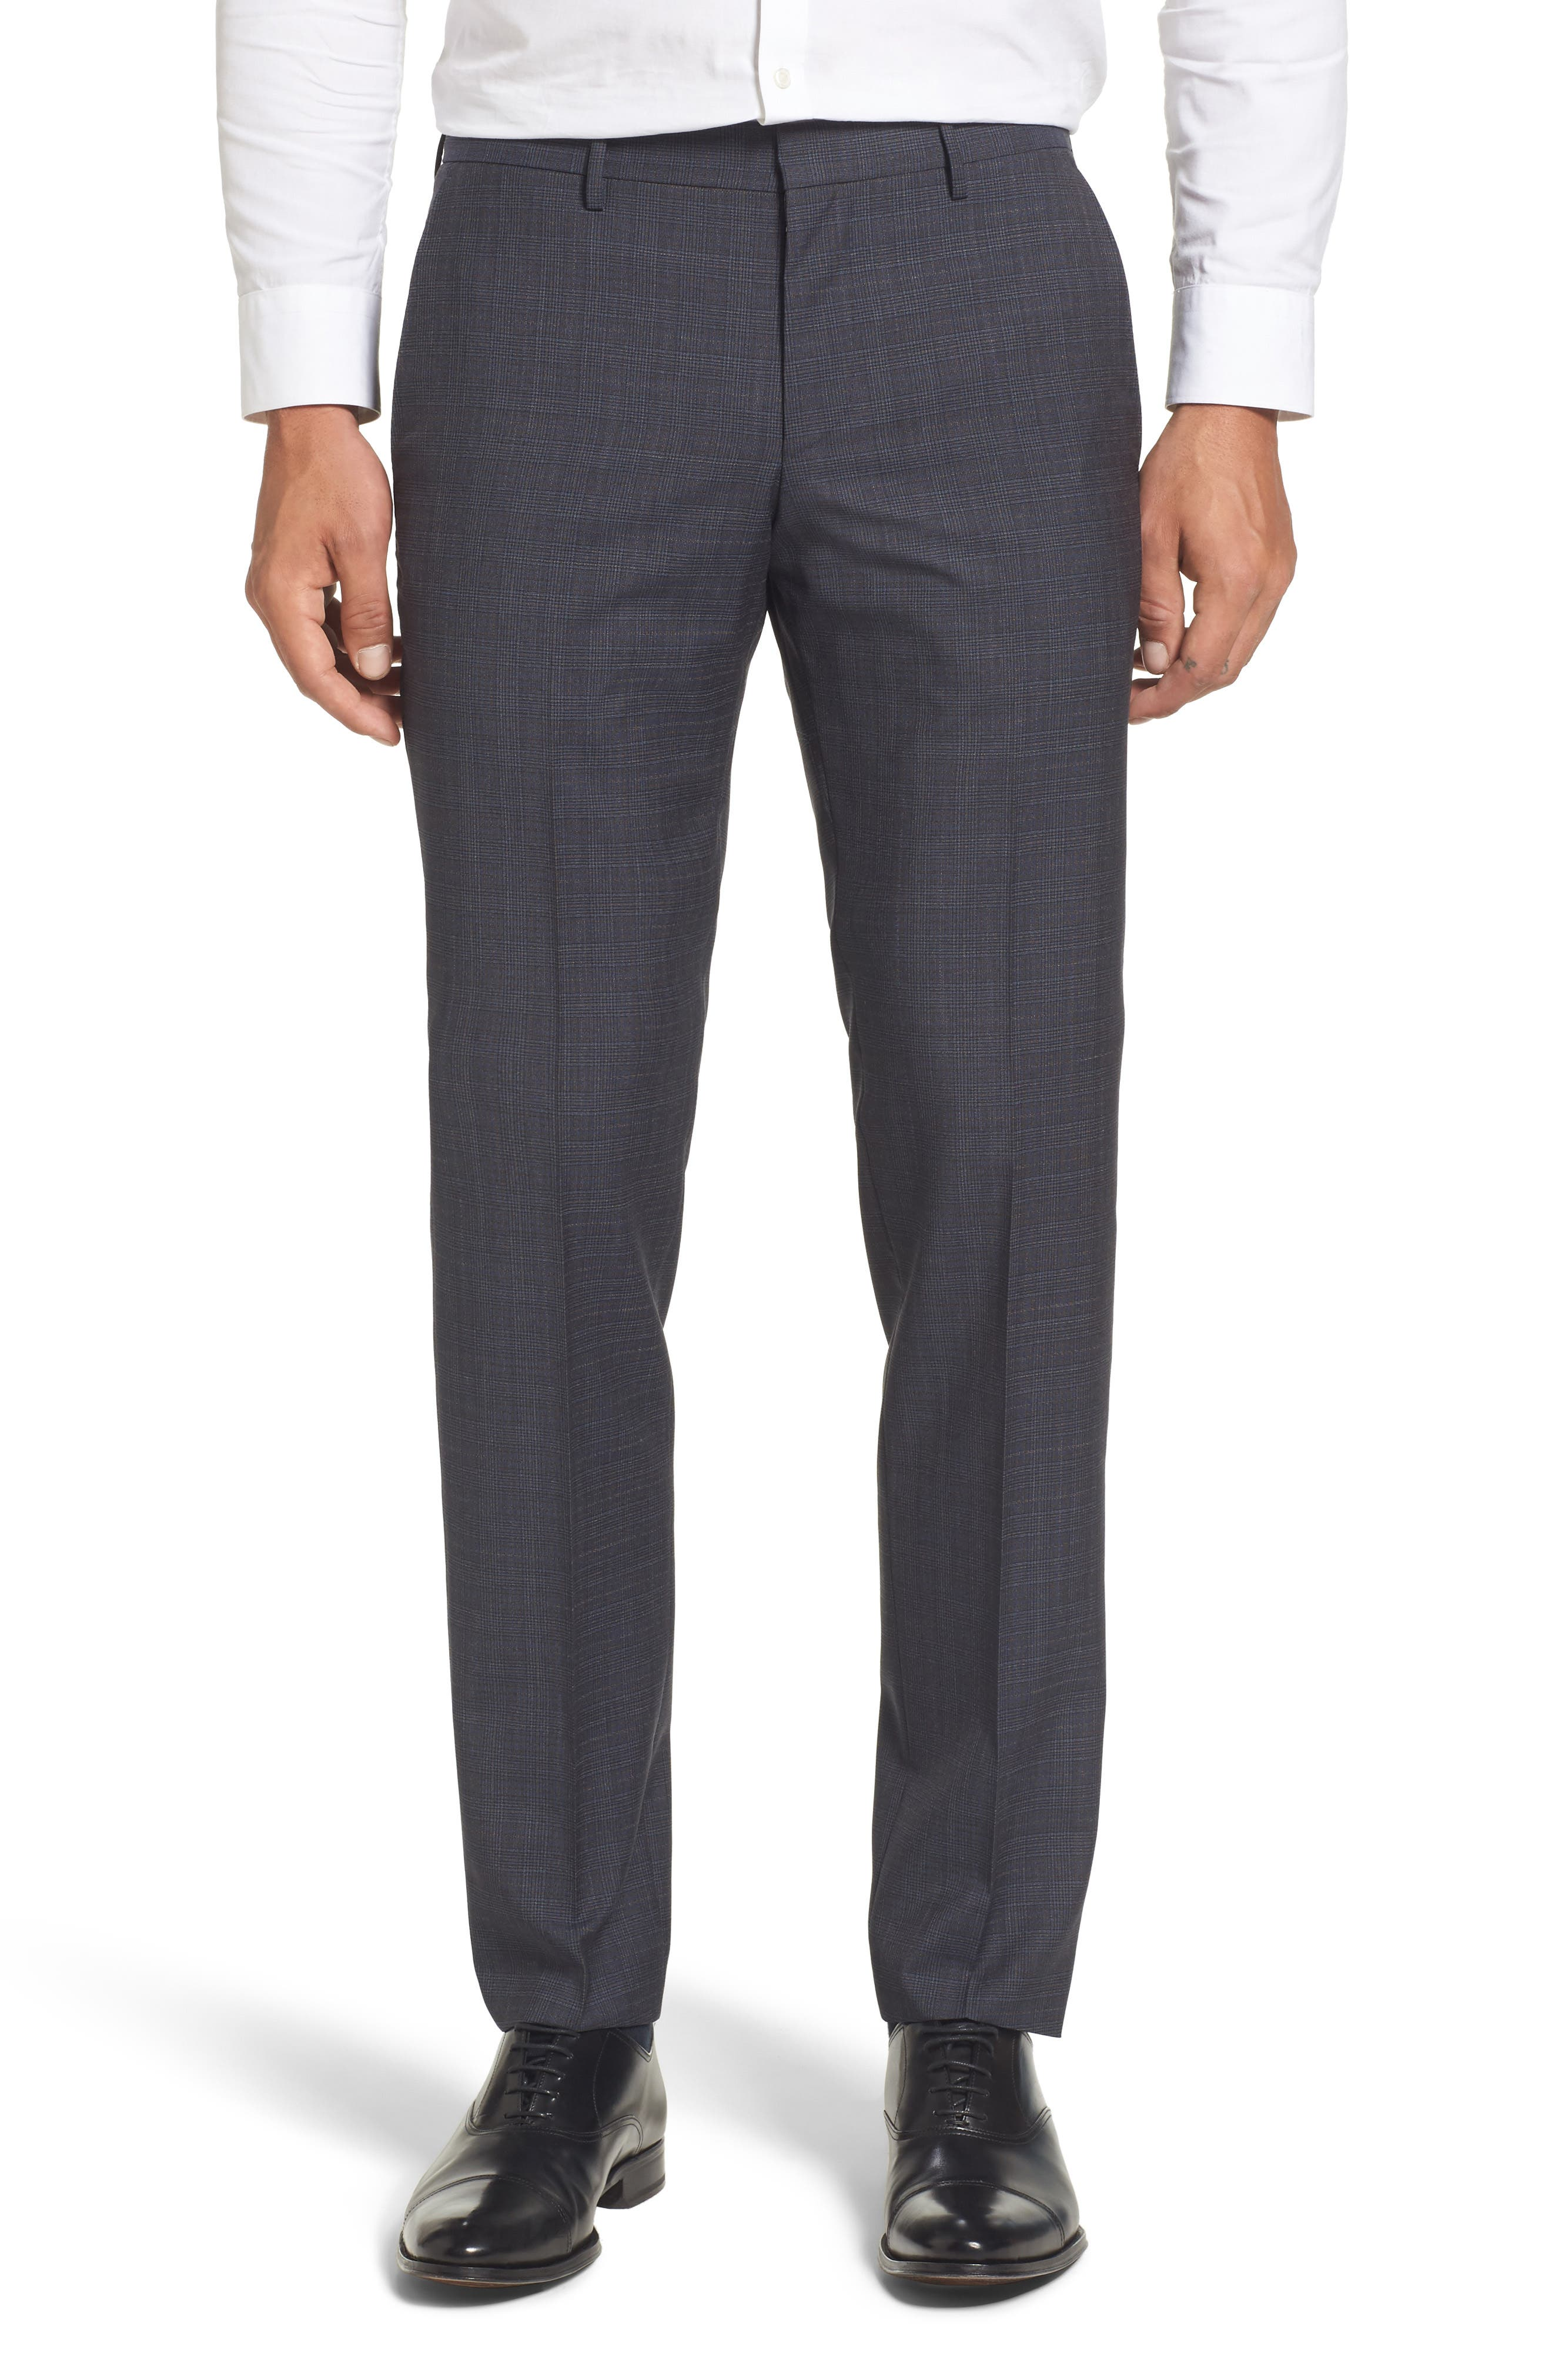 Benso Regular Fit Trousers,                         Main,                         color, 410